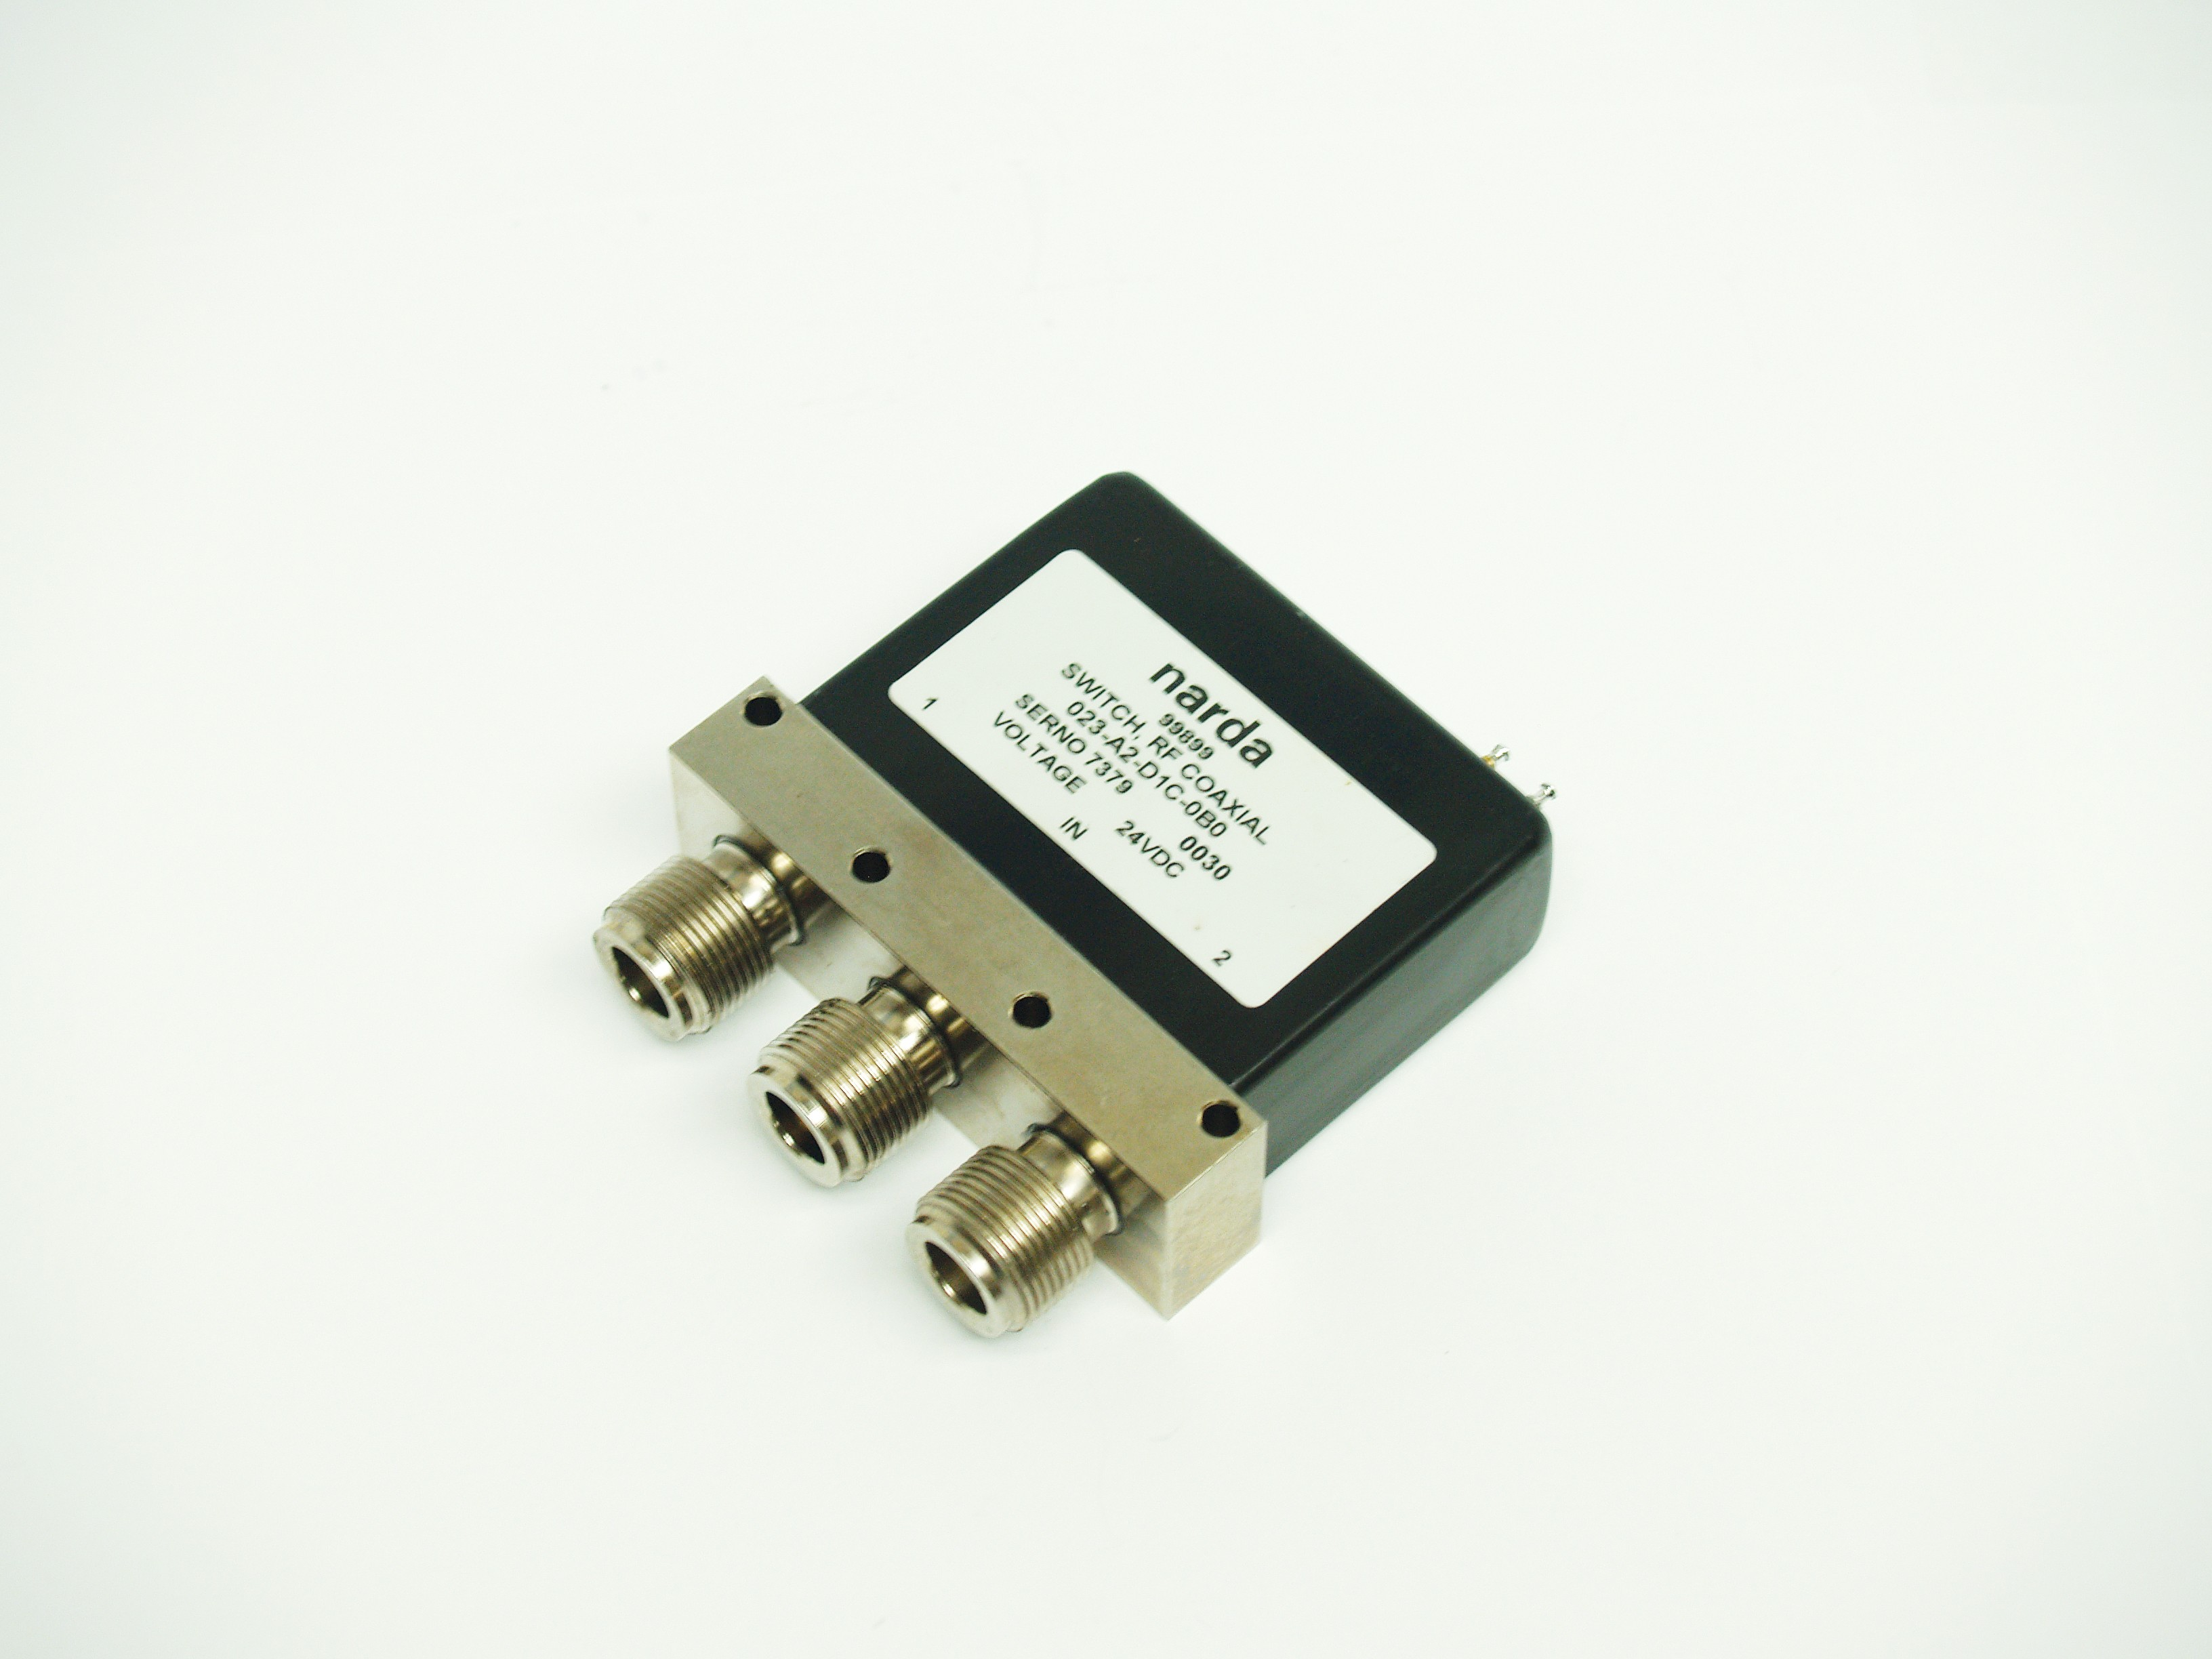 023-A2-D1C-0B0 Coaxial relay, spdt 24vdc